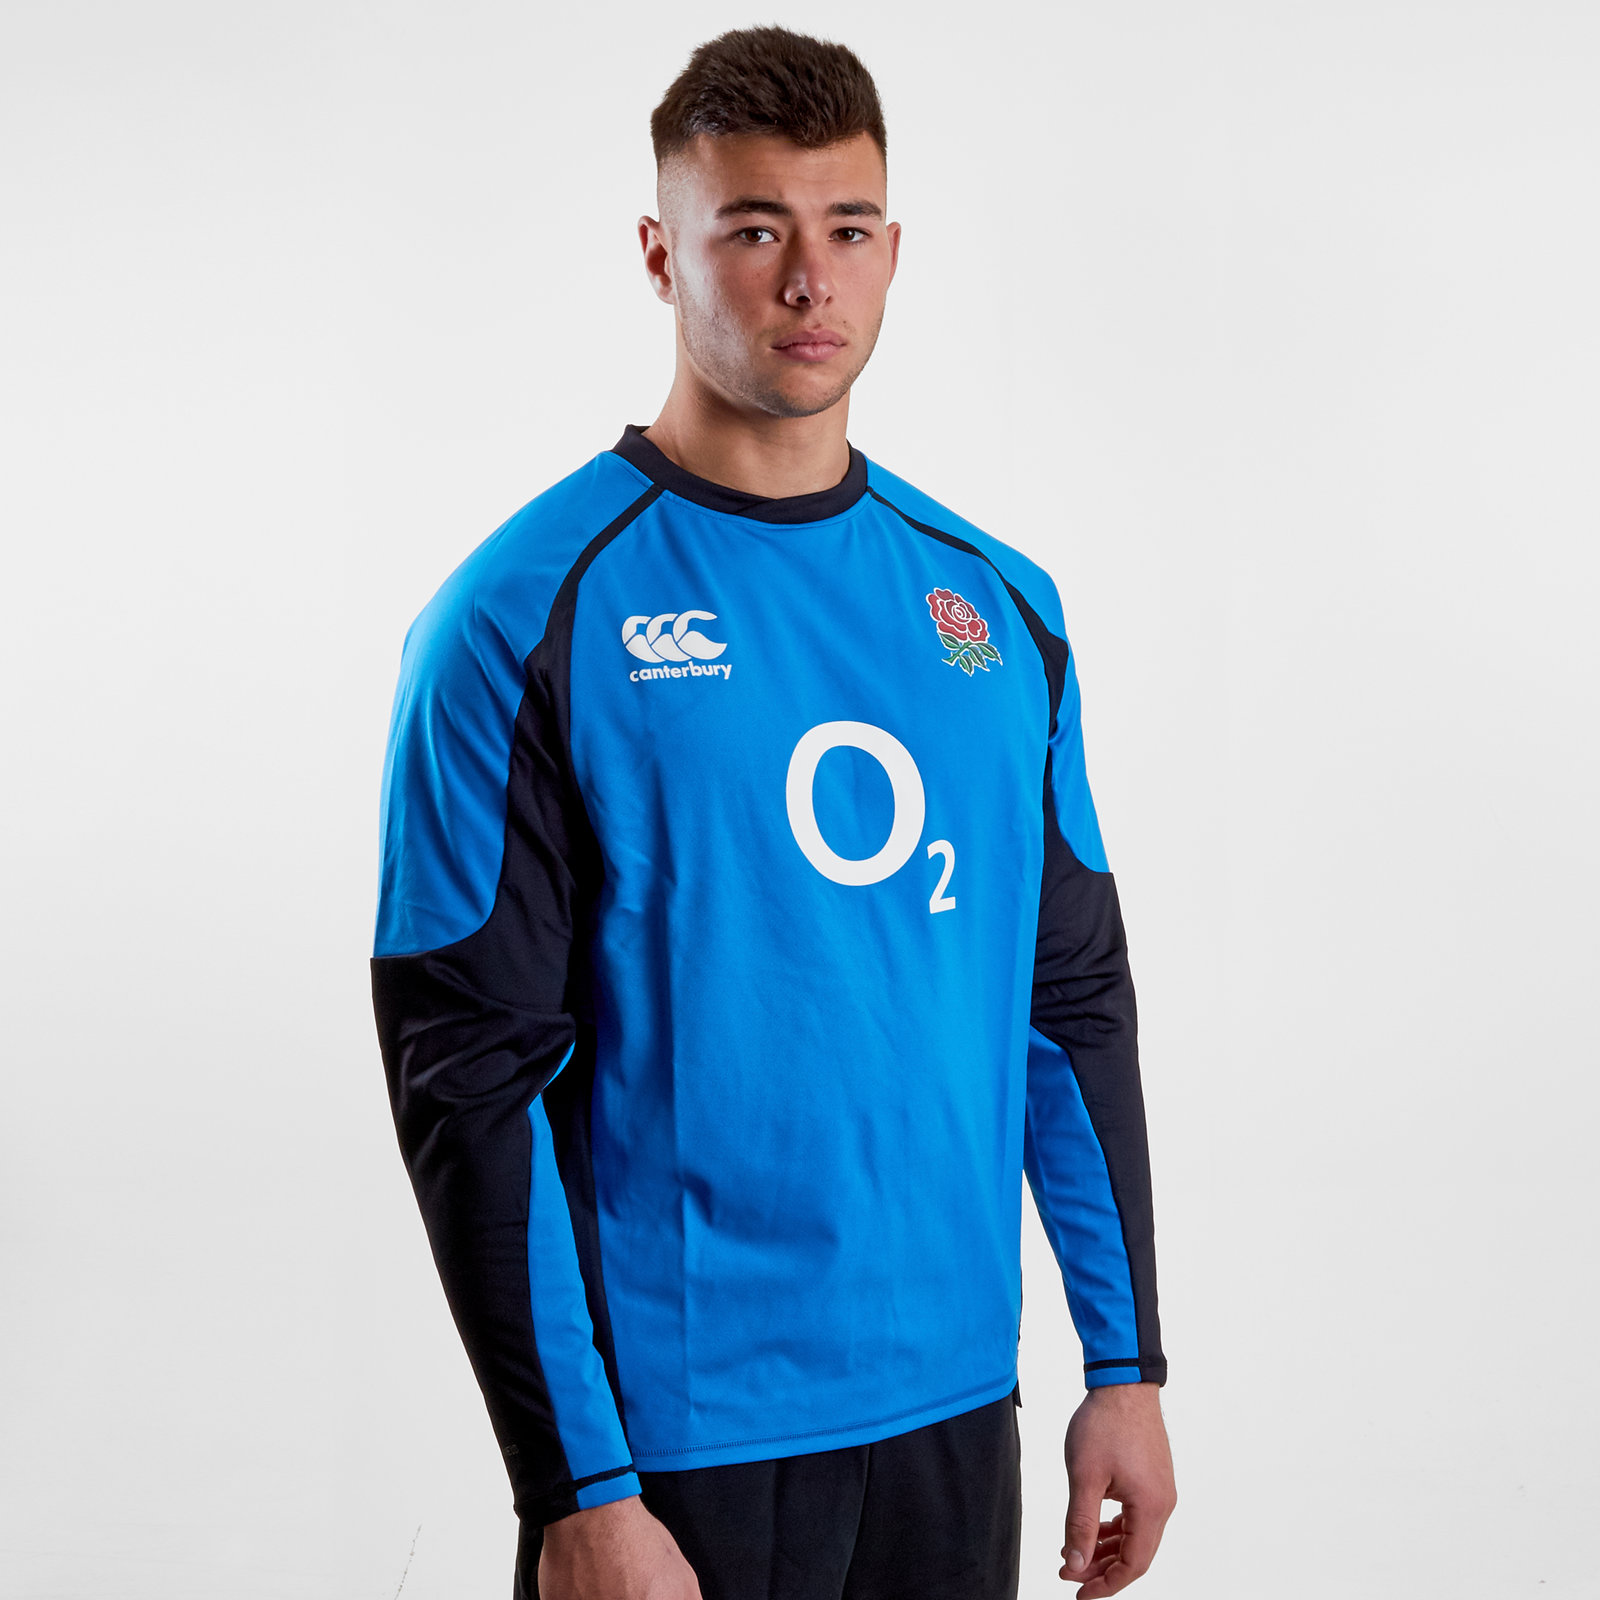 de767bce8aa Canterbury Mens England 2018/19 Players Drill Rugby Training Top Blue Sports